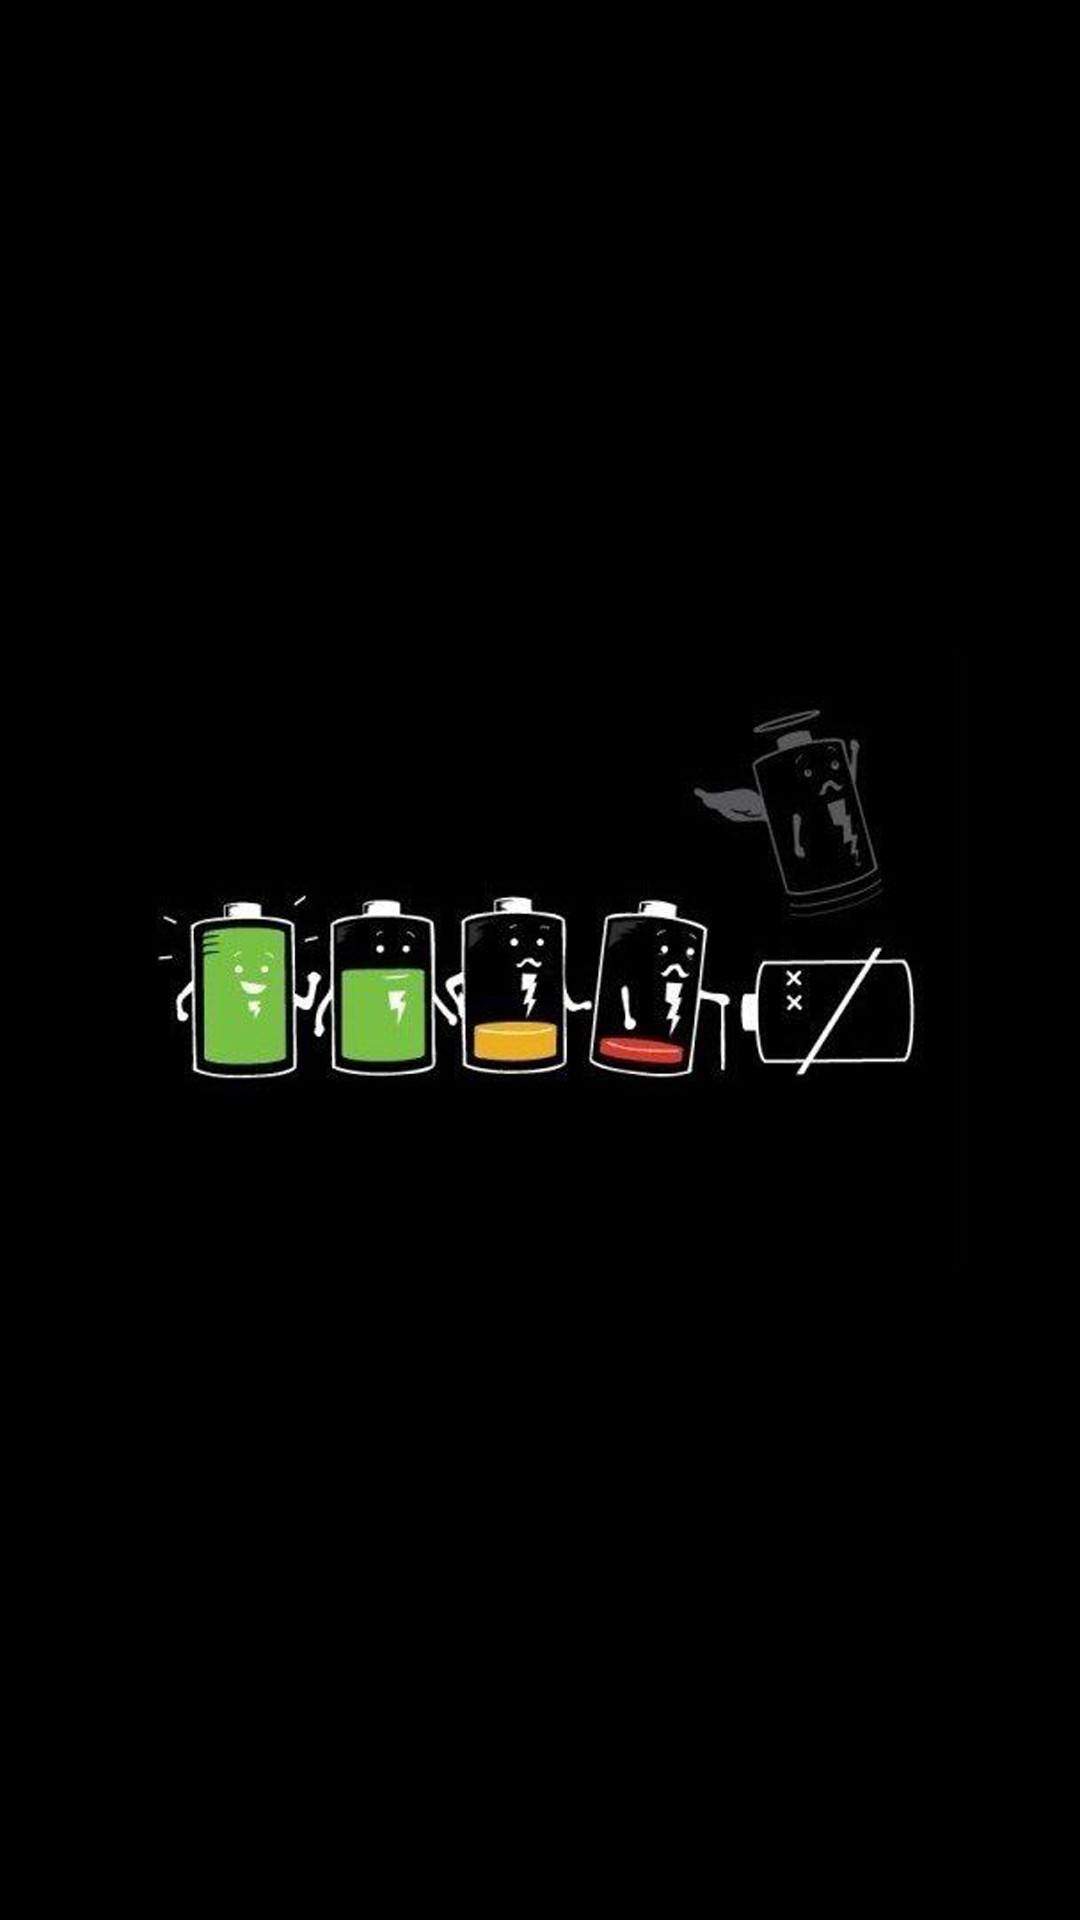 1080x1920 Battery Life Cycle Funny iPhone 6+ HD Wallpaper - http://freebestpicture.